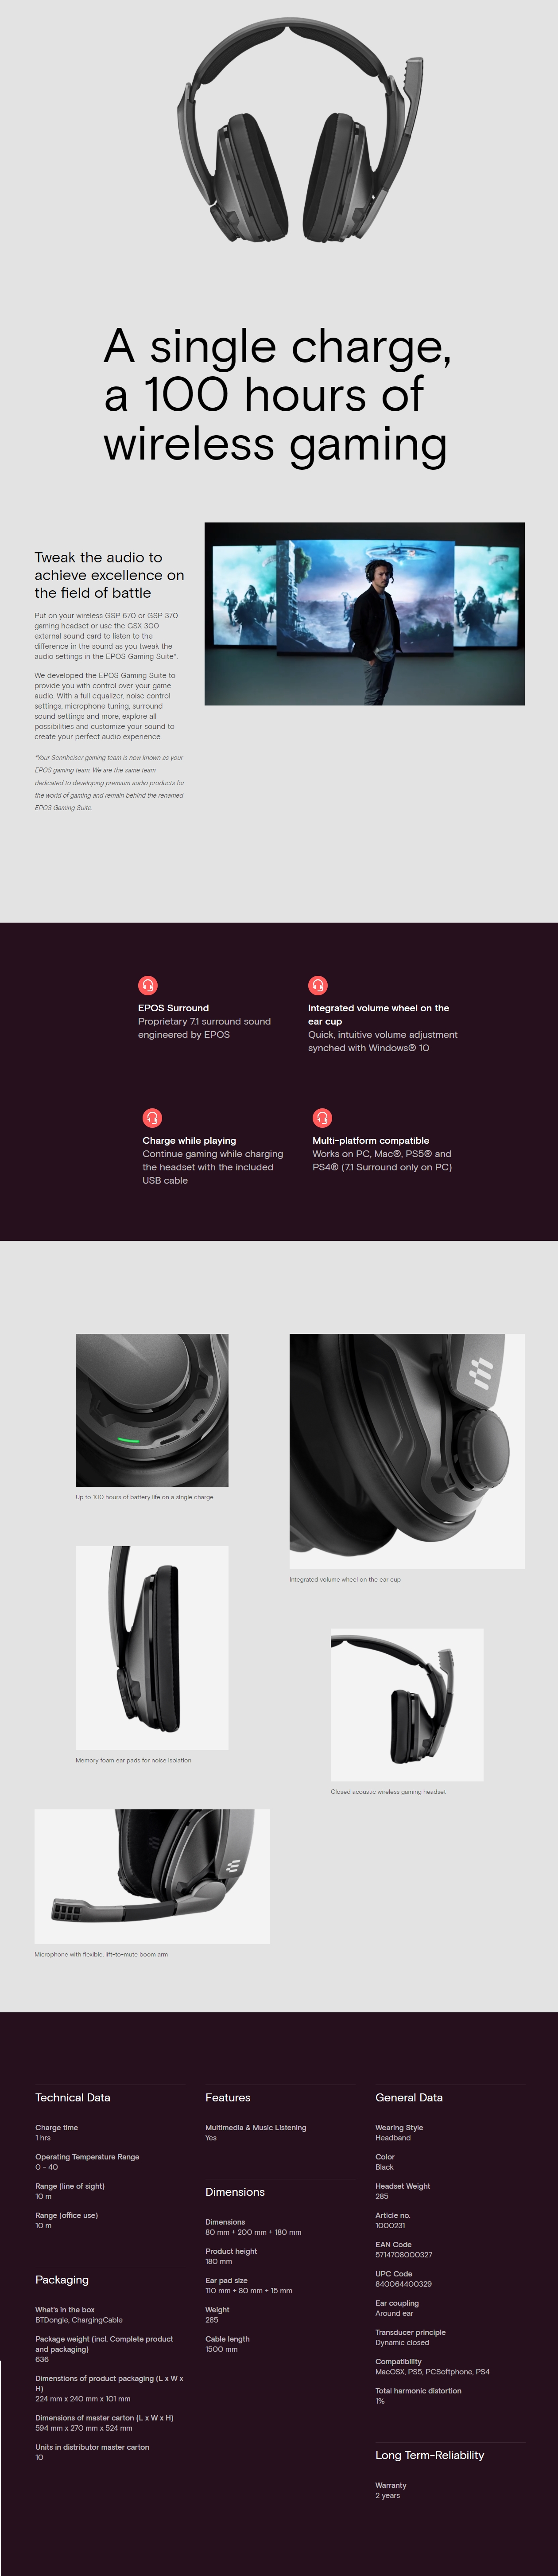 A large marketing image providing additional information about the product EPOS Gaming GSP 370 Wireless Gaming Headset - Additional alt info not provided